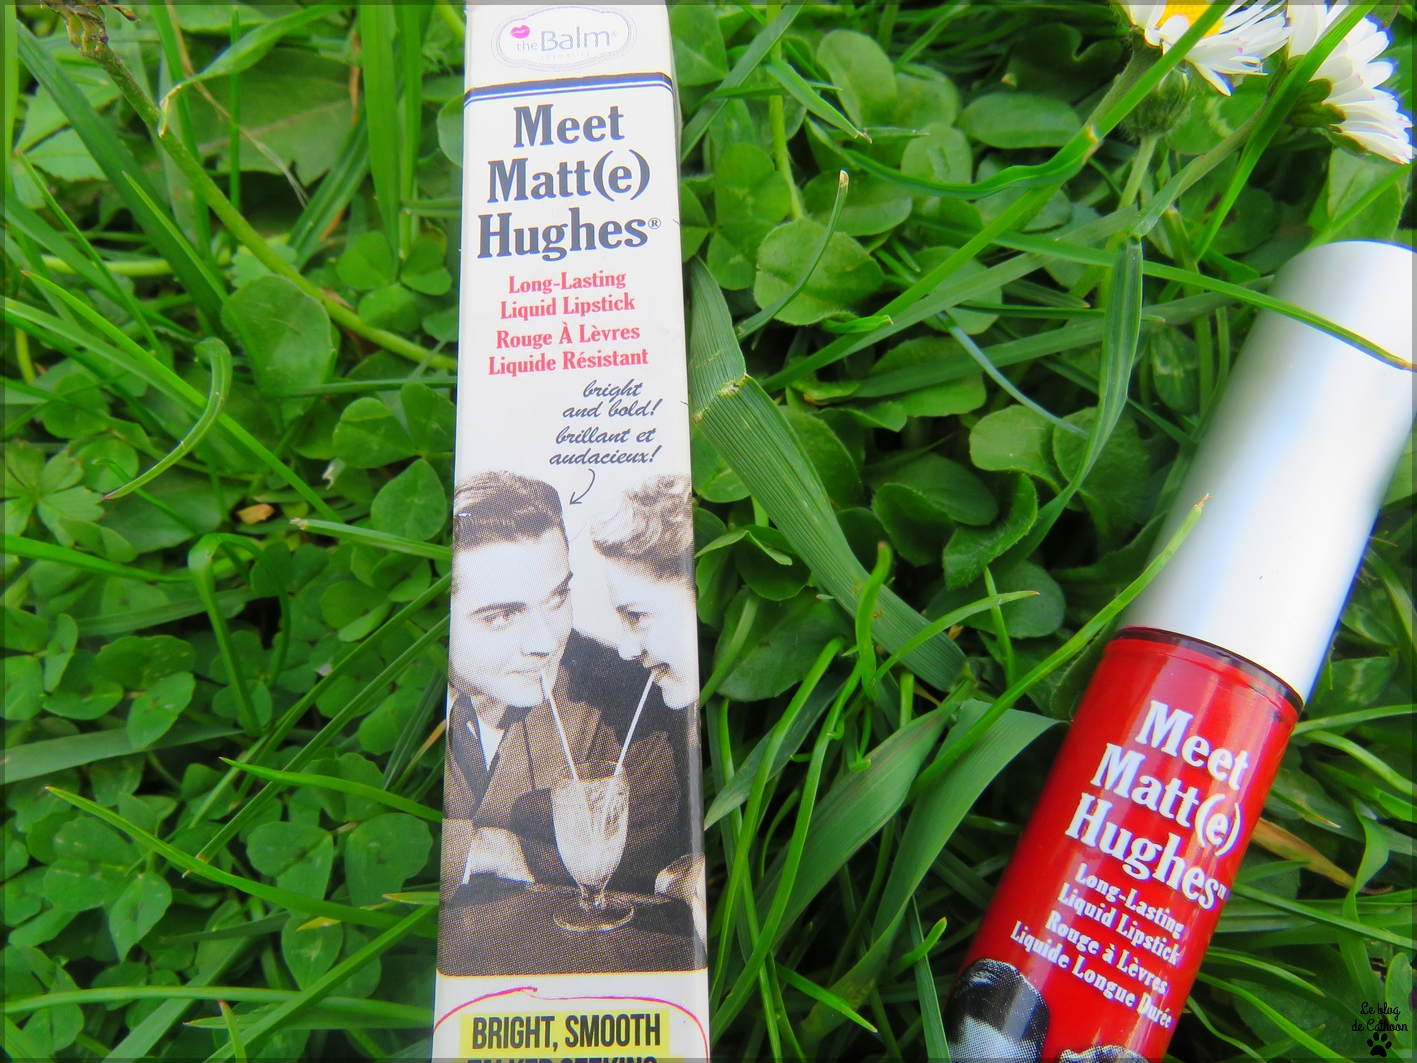 Meet Matt(e) Hughes - Long Lasting Liquid Lipstick - Loyal - The Balm